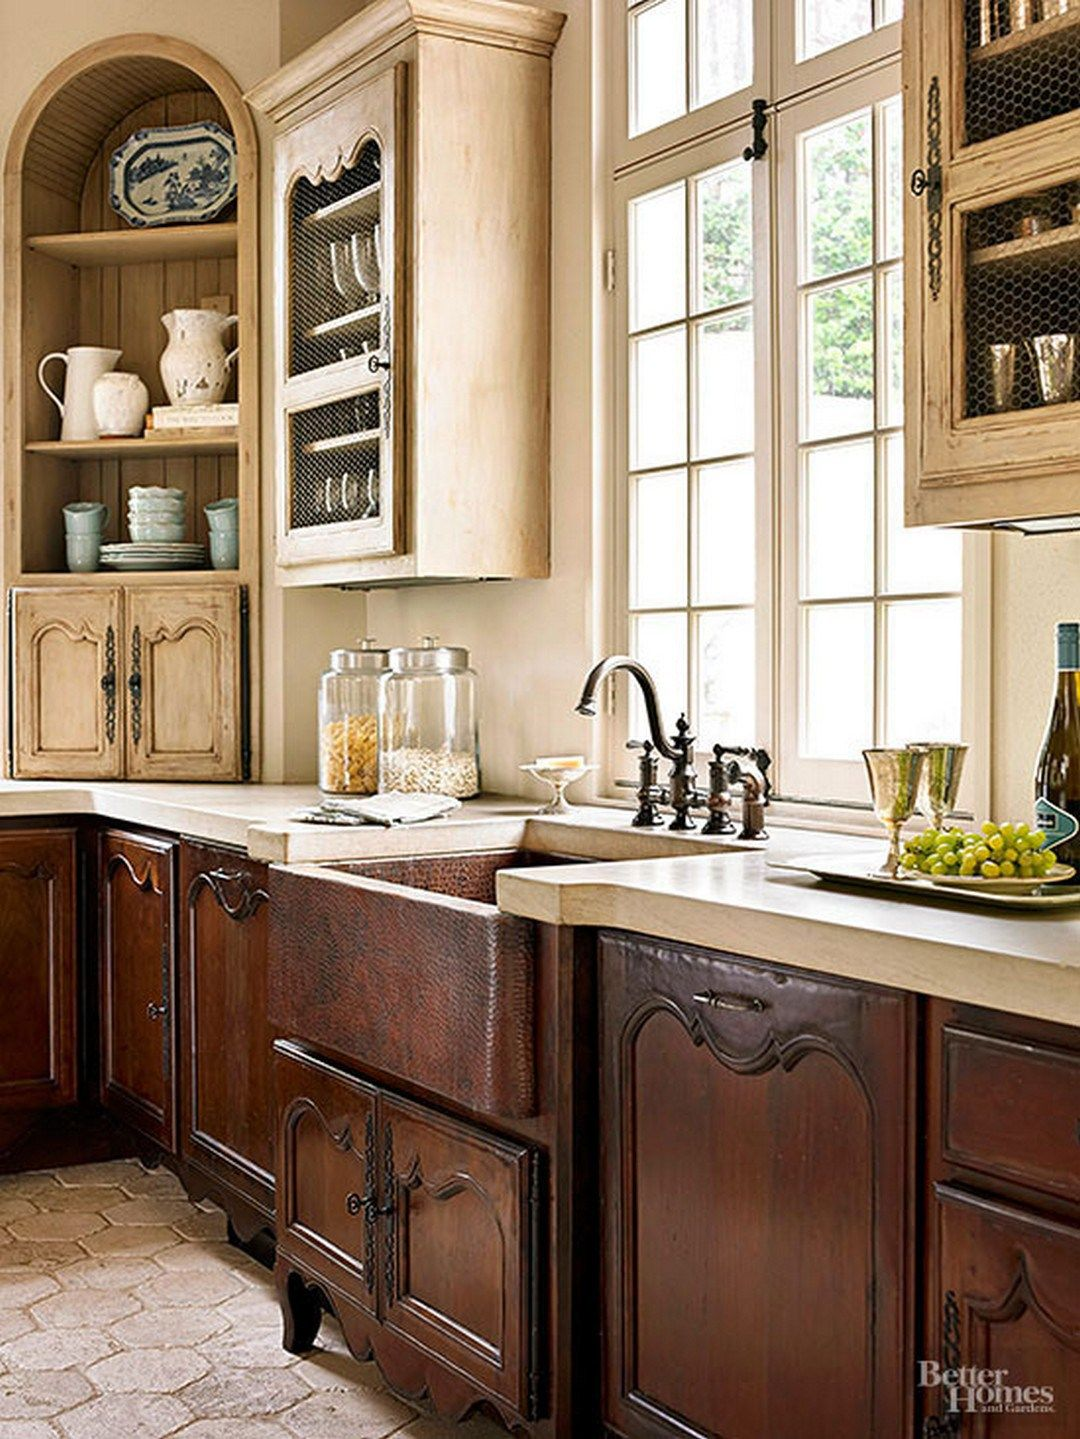 99 French Country Kitchen Modern Design Ideas 27 99architecture French Kitchen Design French Country Decorating Kitchen Country Kitchen Decor